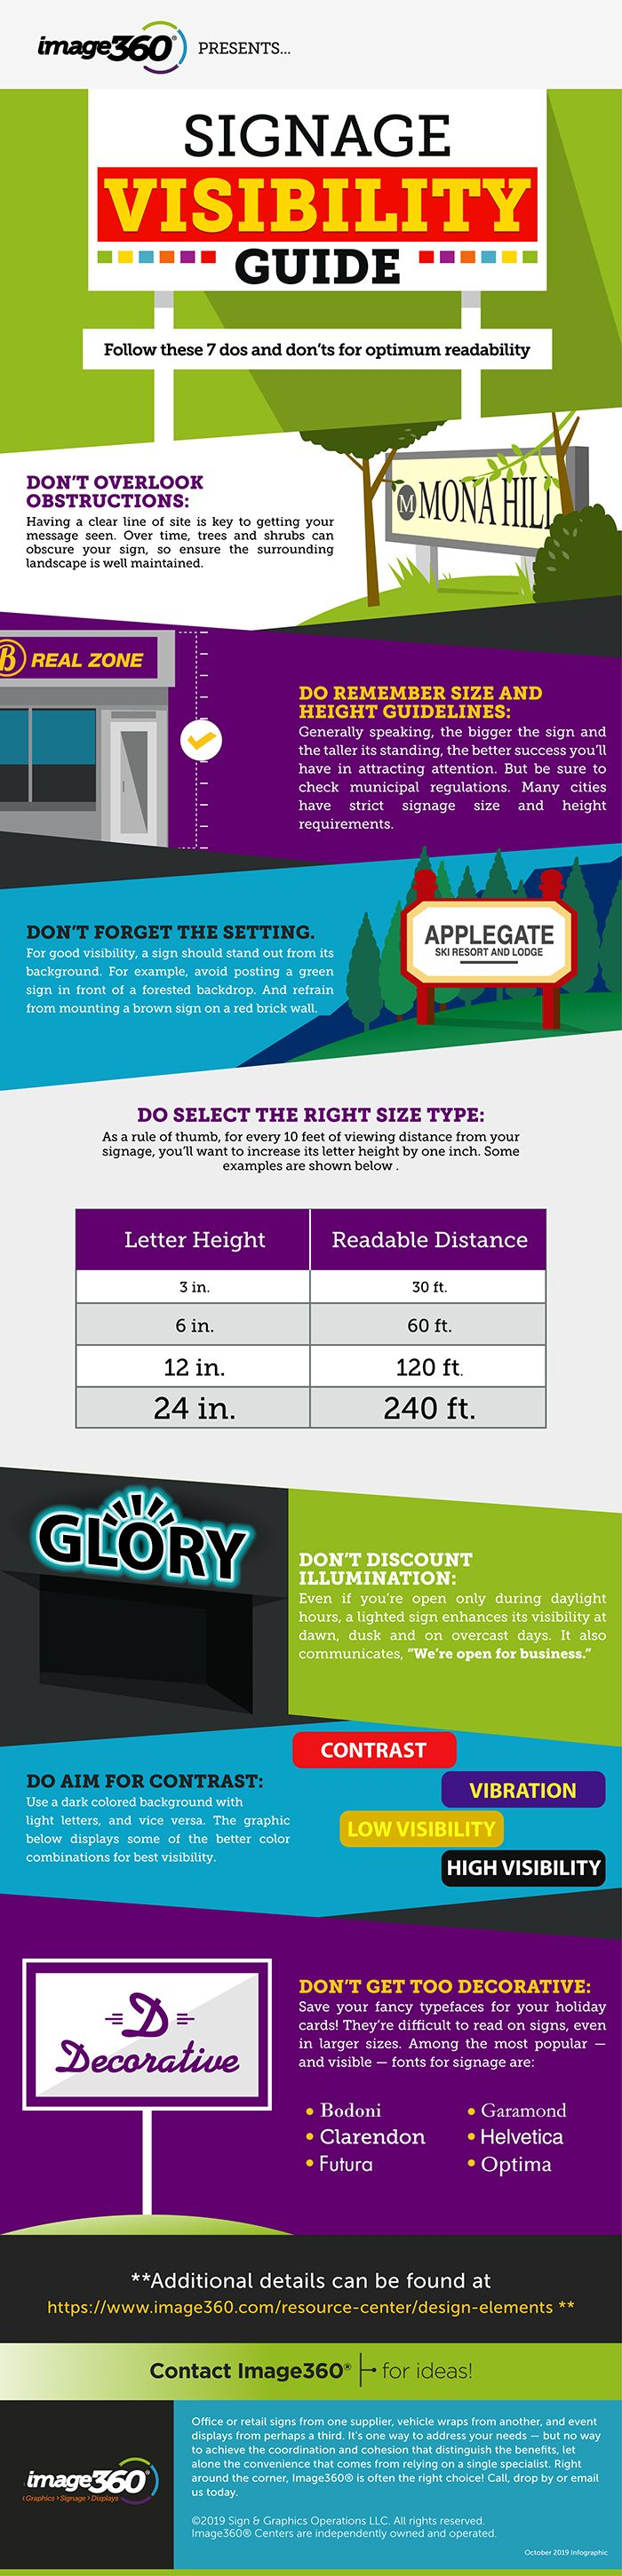 Image360 Infographic Signage Visibility Guide